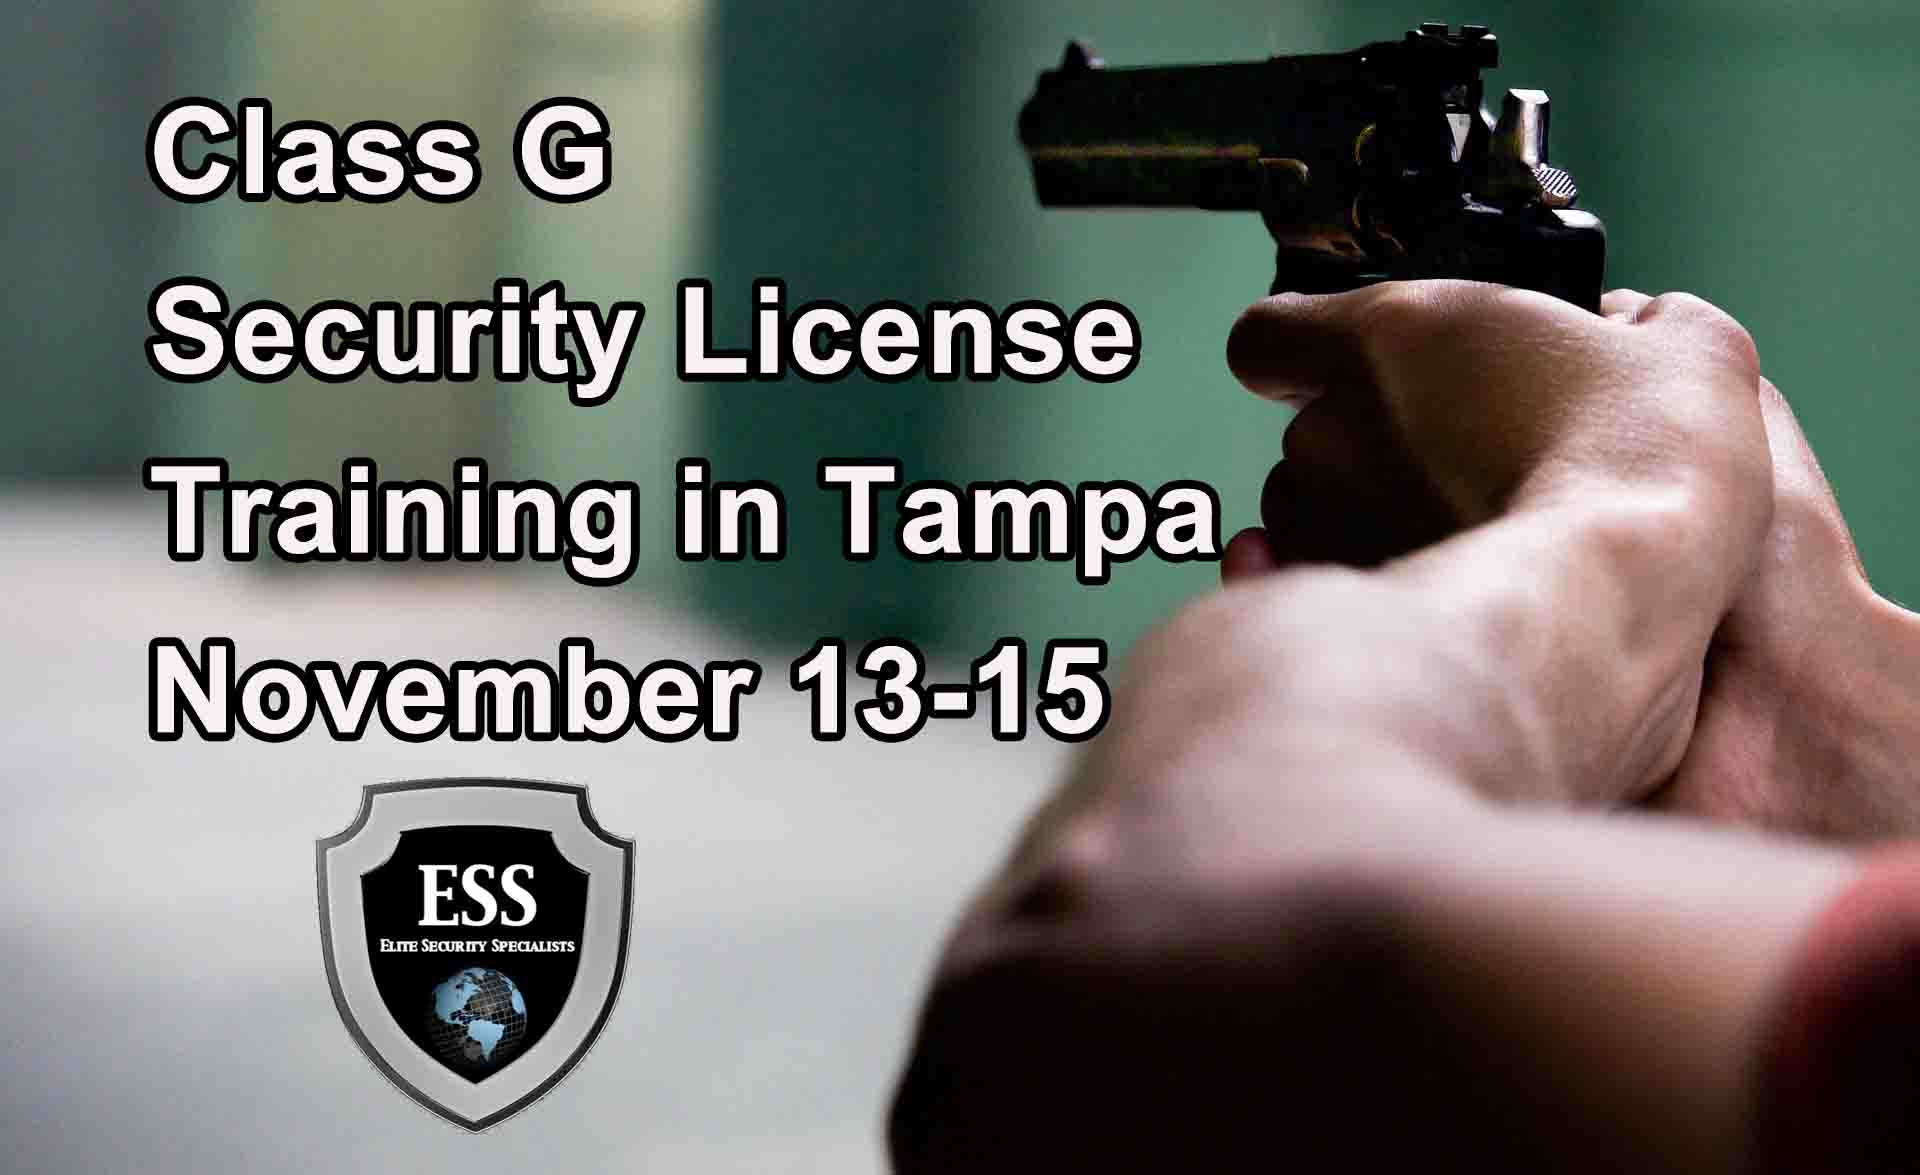 Class G Security License Training in Tampa NOV